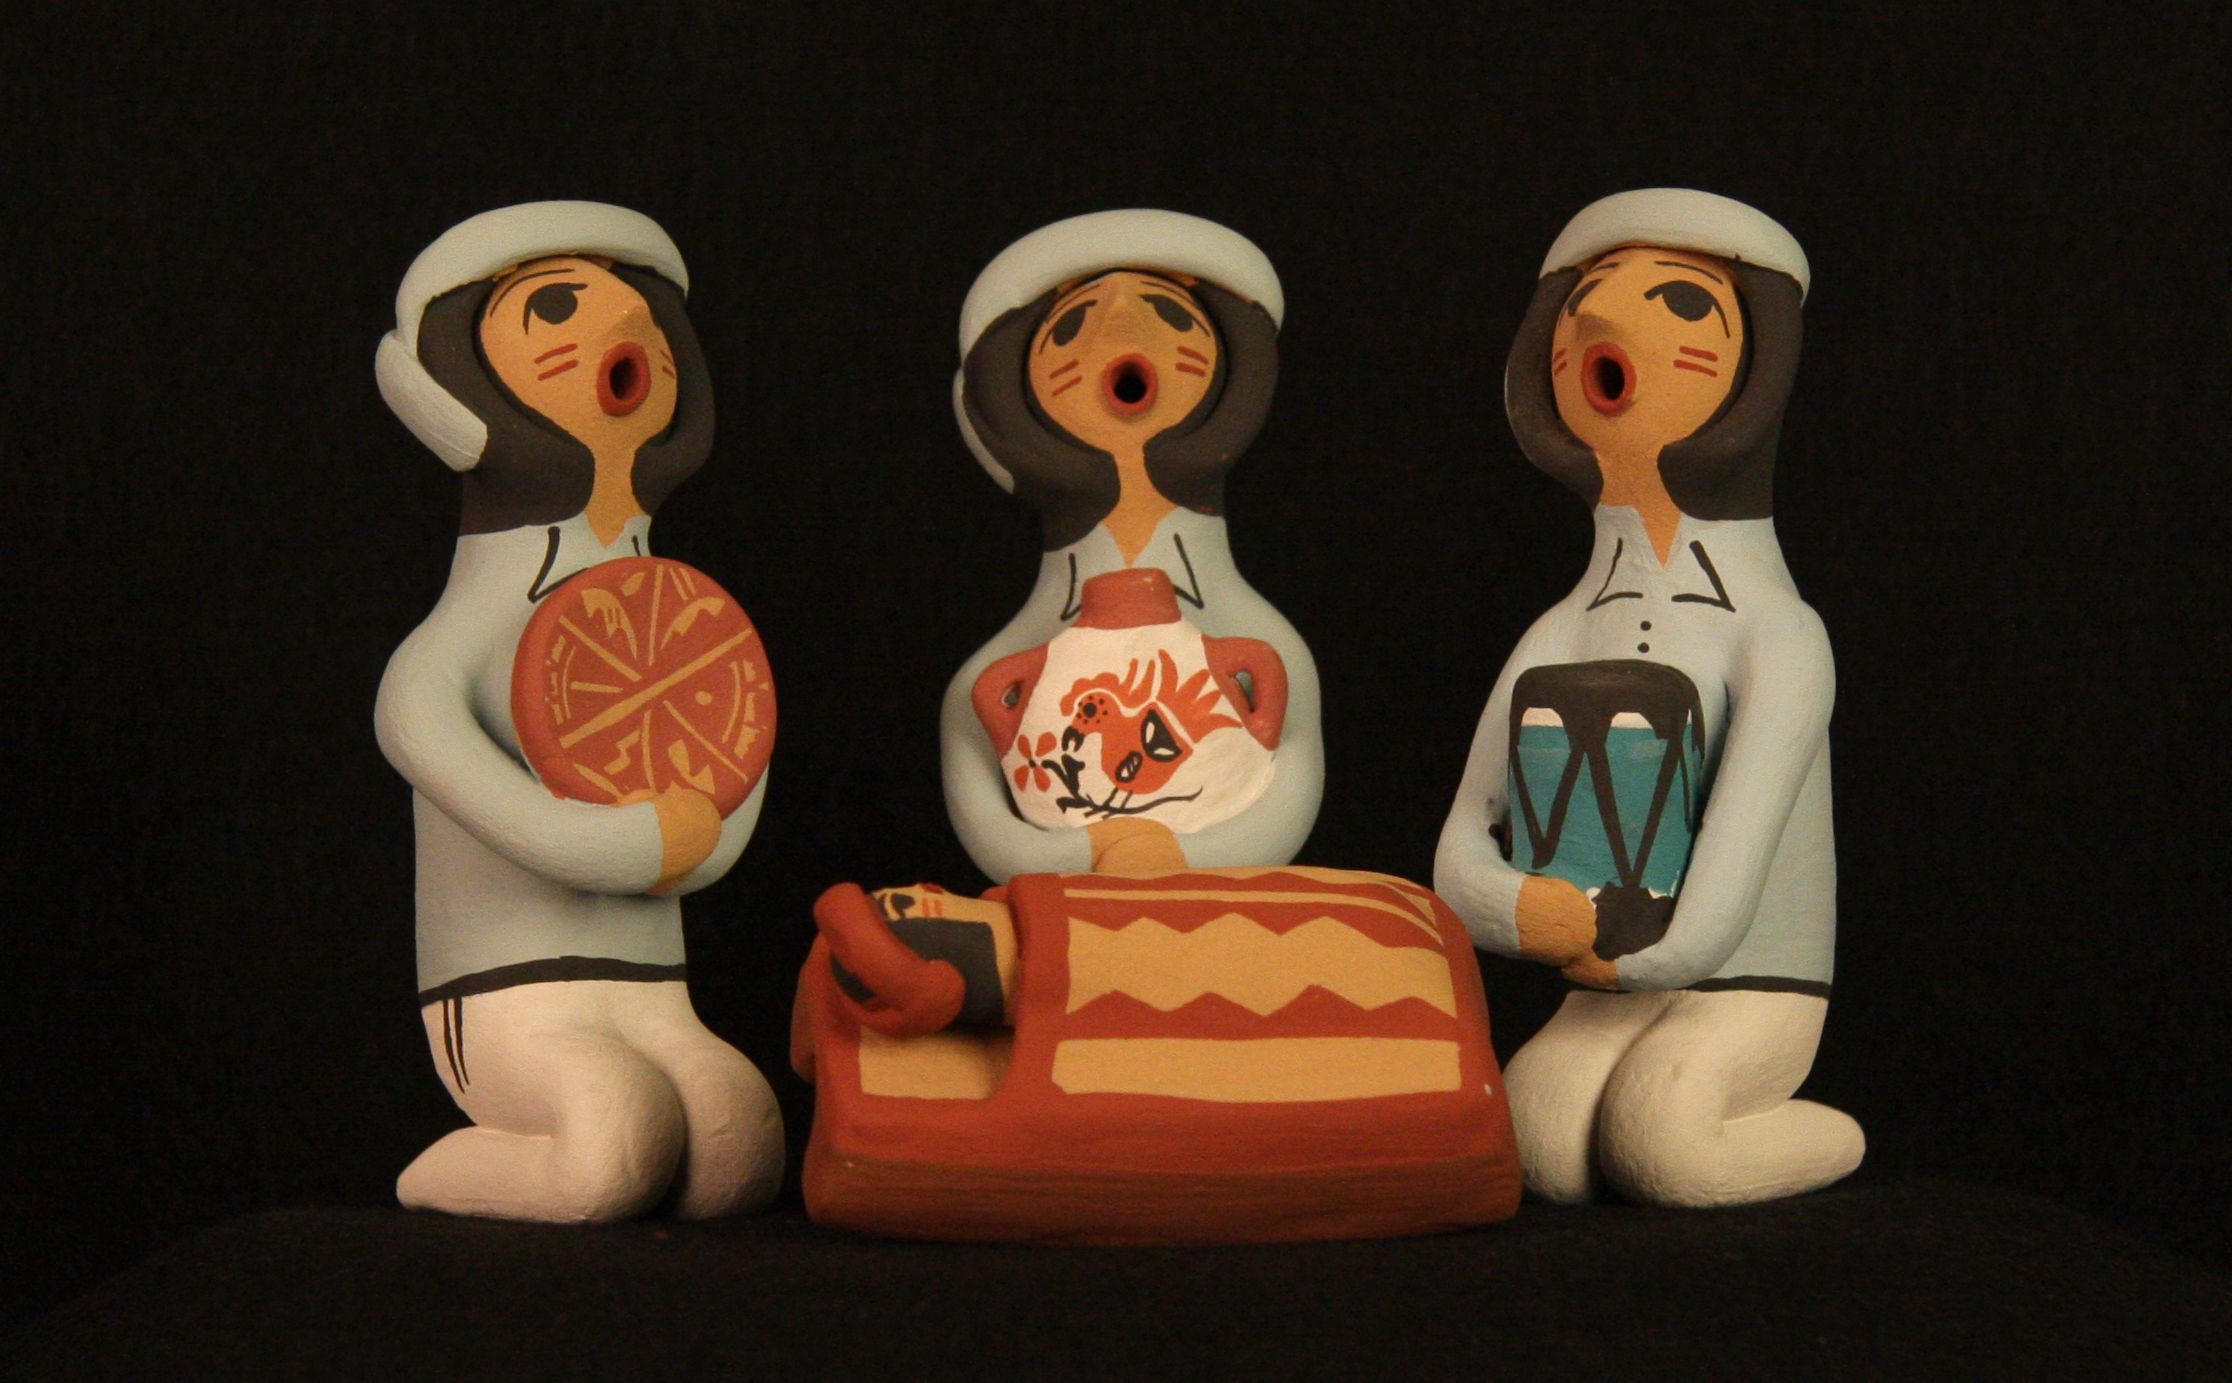 "This Pueblo Indian Nativity ( nacimiento ) was made in 2011 by Cheryl Fragua of the Jemez Pueblo, New Mexico, using clay and natural pigments. Most of the residents of the Pueblos have accepted Christianity as an addition to their own pre-Christian traditions. Today a number of Pueblo Indian artisans make Nativities regularly, along with other works such as the famous ceramic storyteller figures. Indian culture is rich with myths and stories, which are used to convey traditions and values. The storyteller and Nativity figures usually have closed eyes and an open mouth in order to ""let the stories out."" Collection of Glencairn Museum."